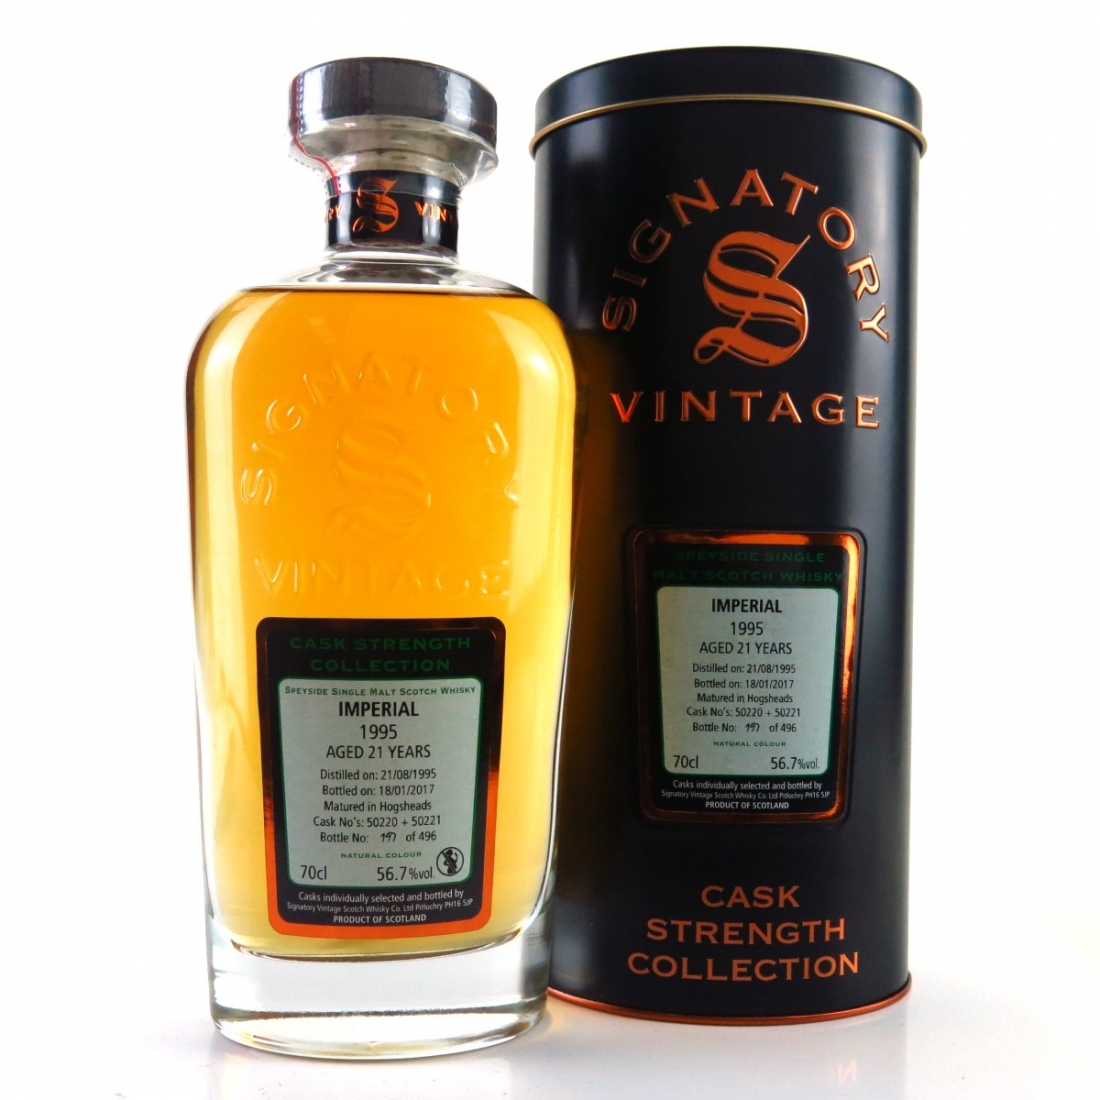 Imperial 1995 Signatory Vintage 21 Year Old Cask Strength